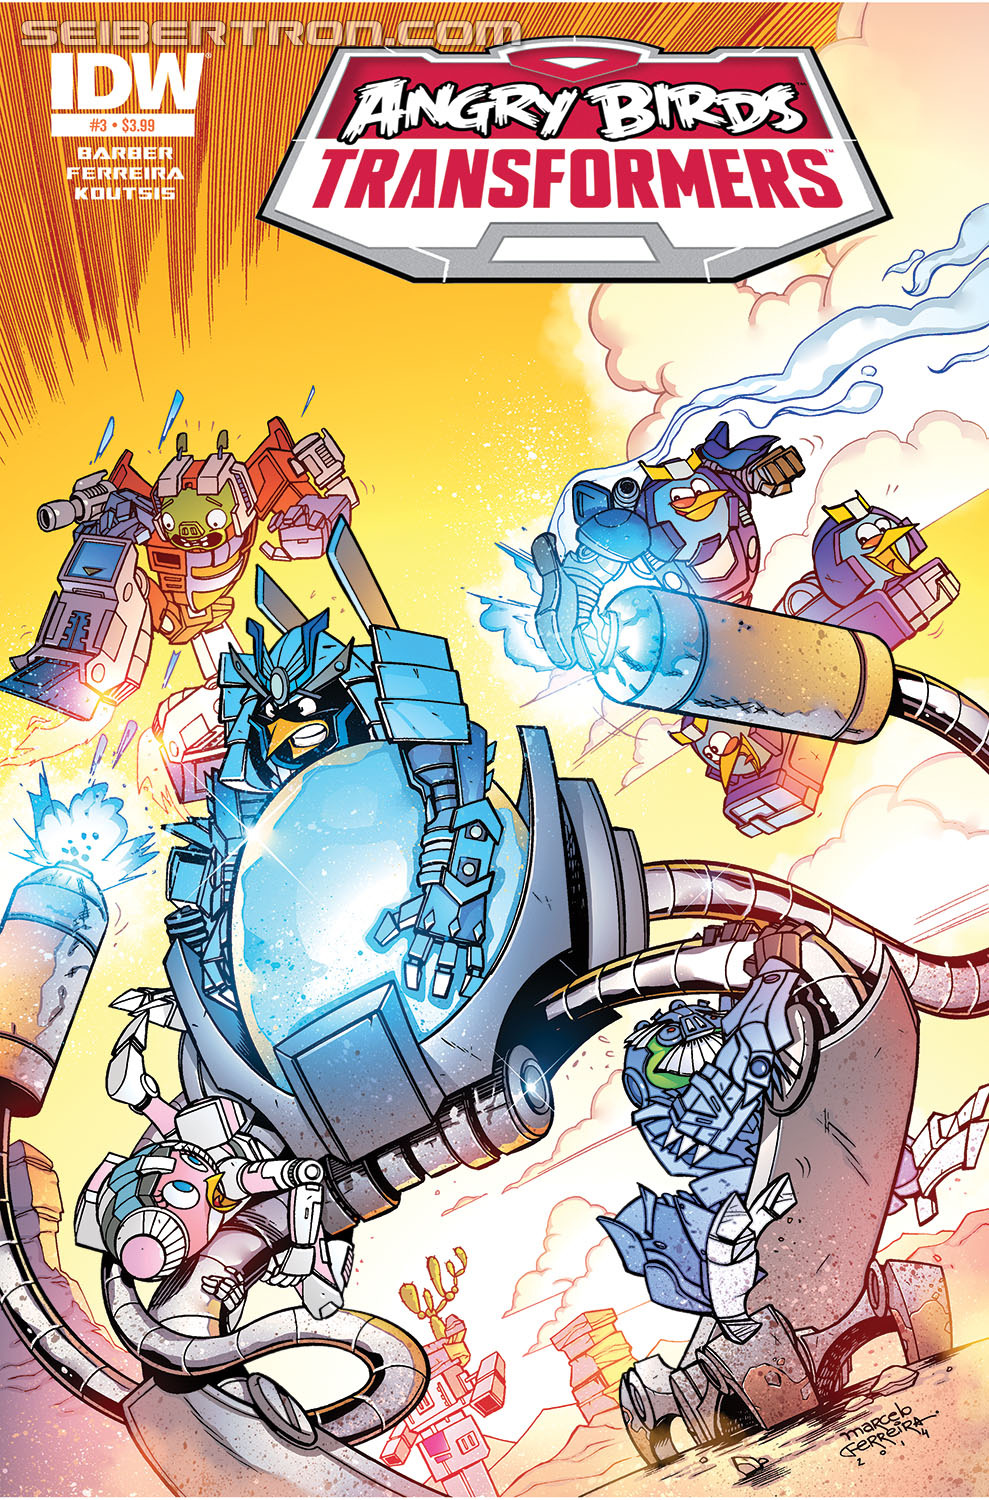 Angry Birds Transformers Issue 3